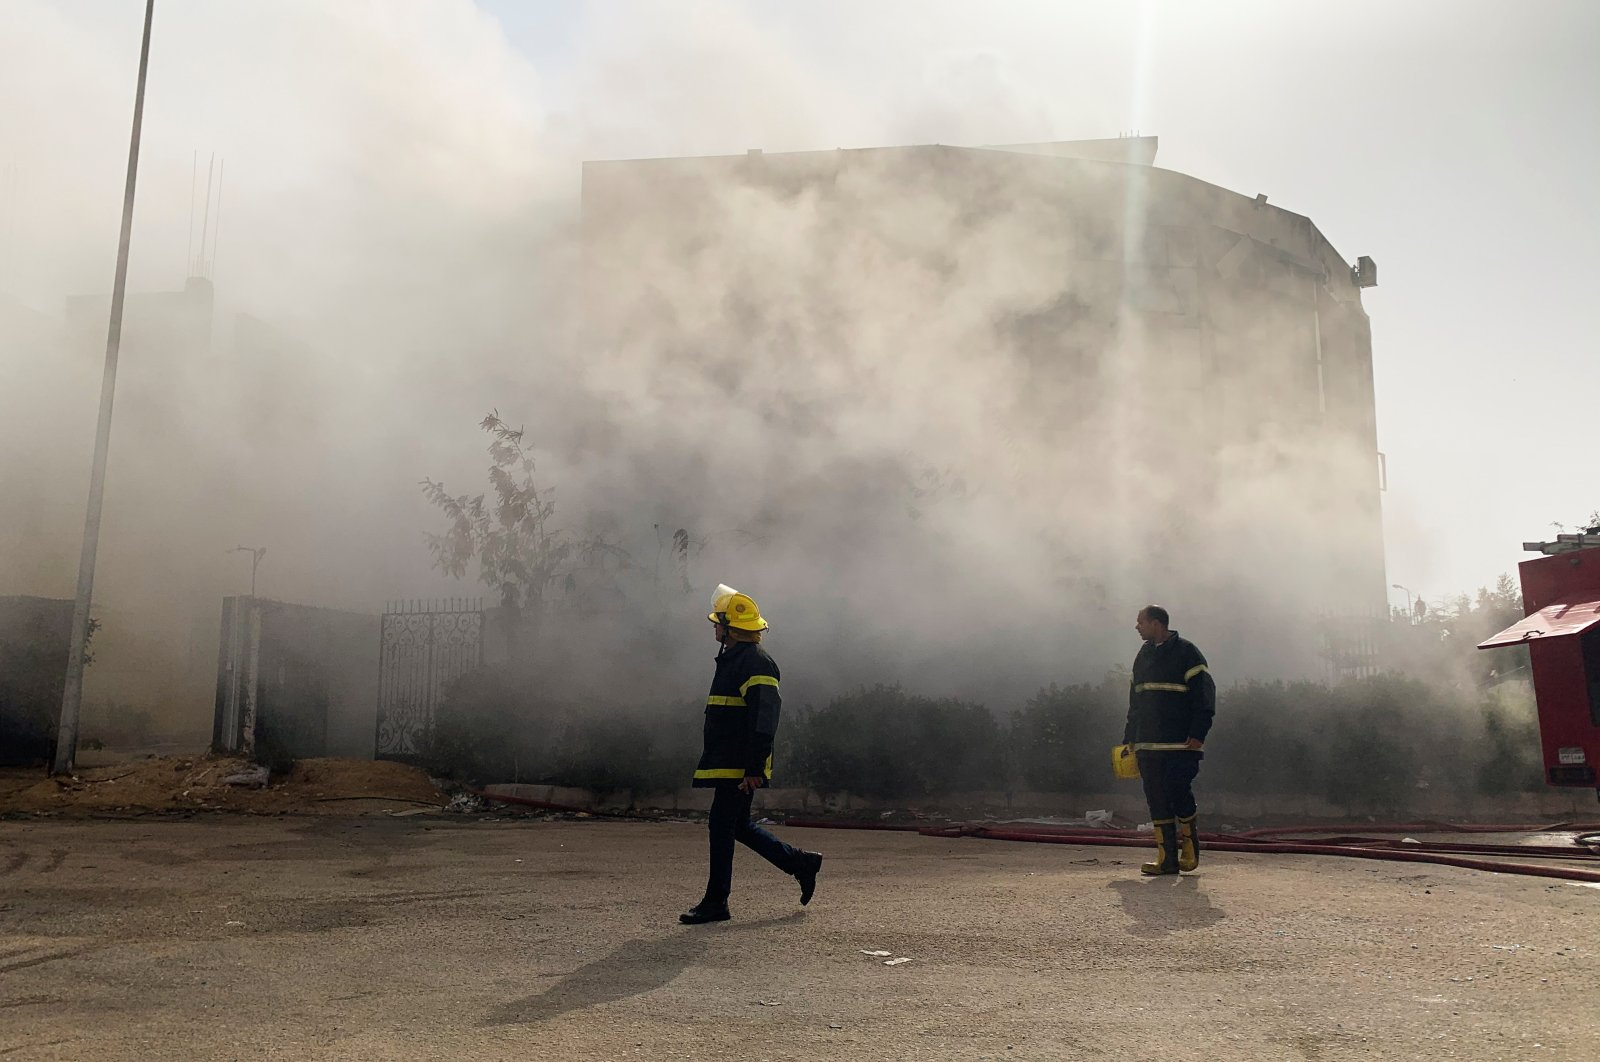 Firefighters are seen at the scene after a fire broke out in a garment factory north of Cairo, Egypt, March 11, 2021. (Reuters Photo)